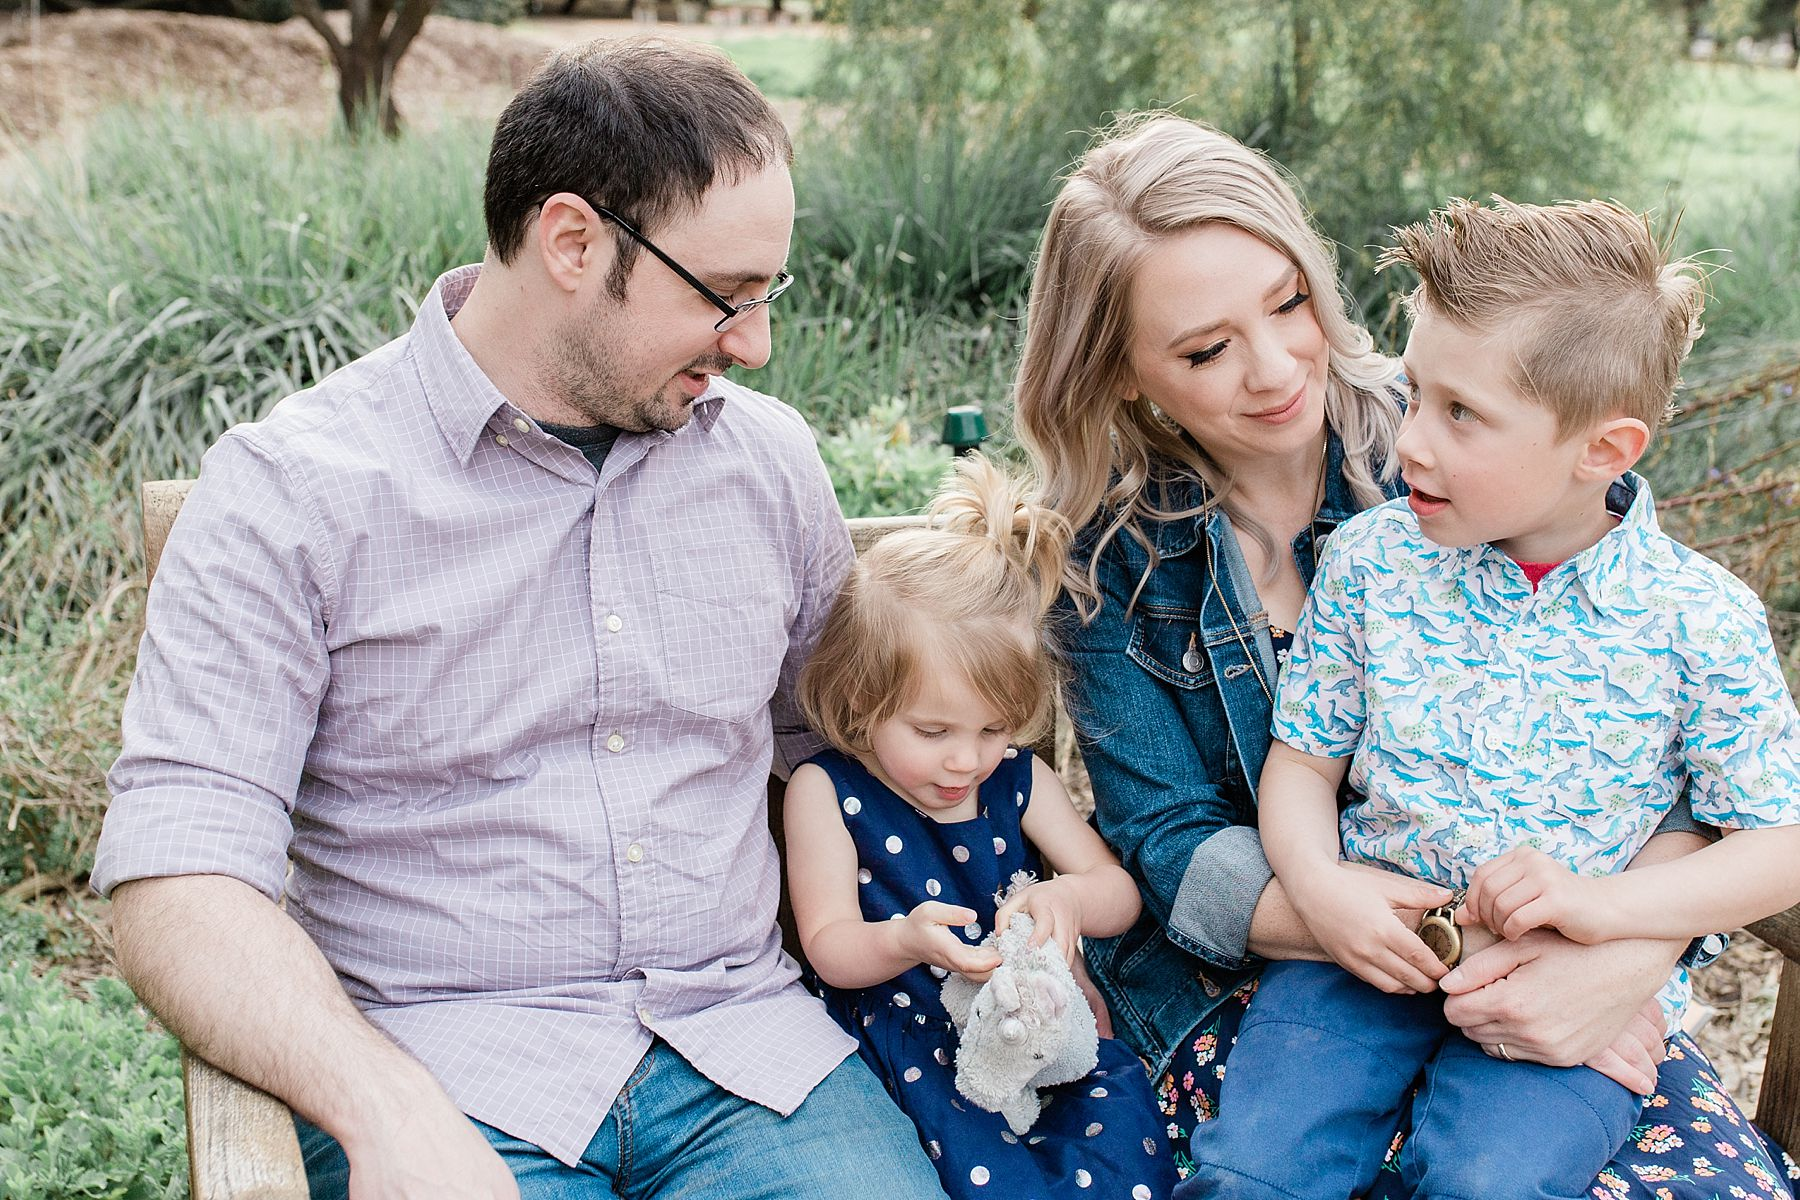 Davis Family Portraits at UC Davis Arboretum - Padovani Family - Ashley Baumgartner - Davis Family Photographer_0021.jpg